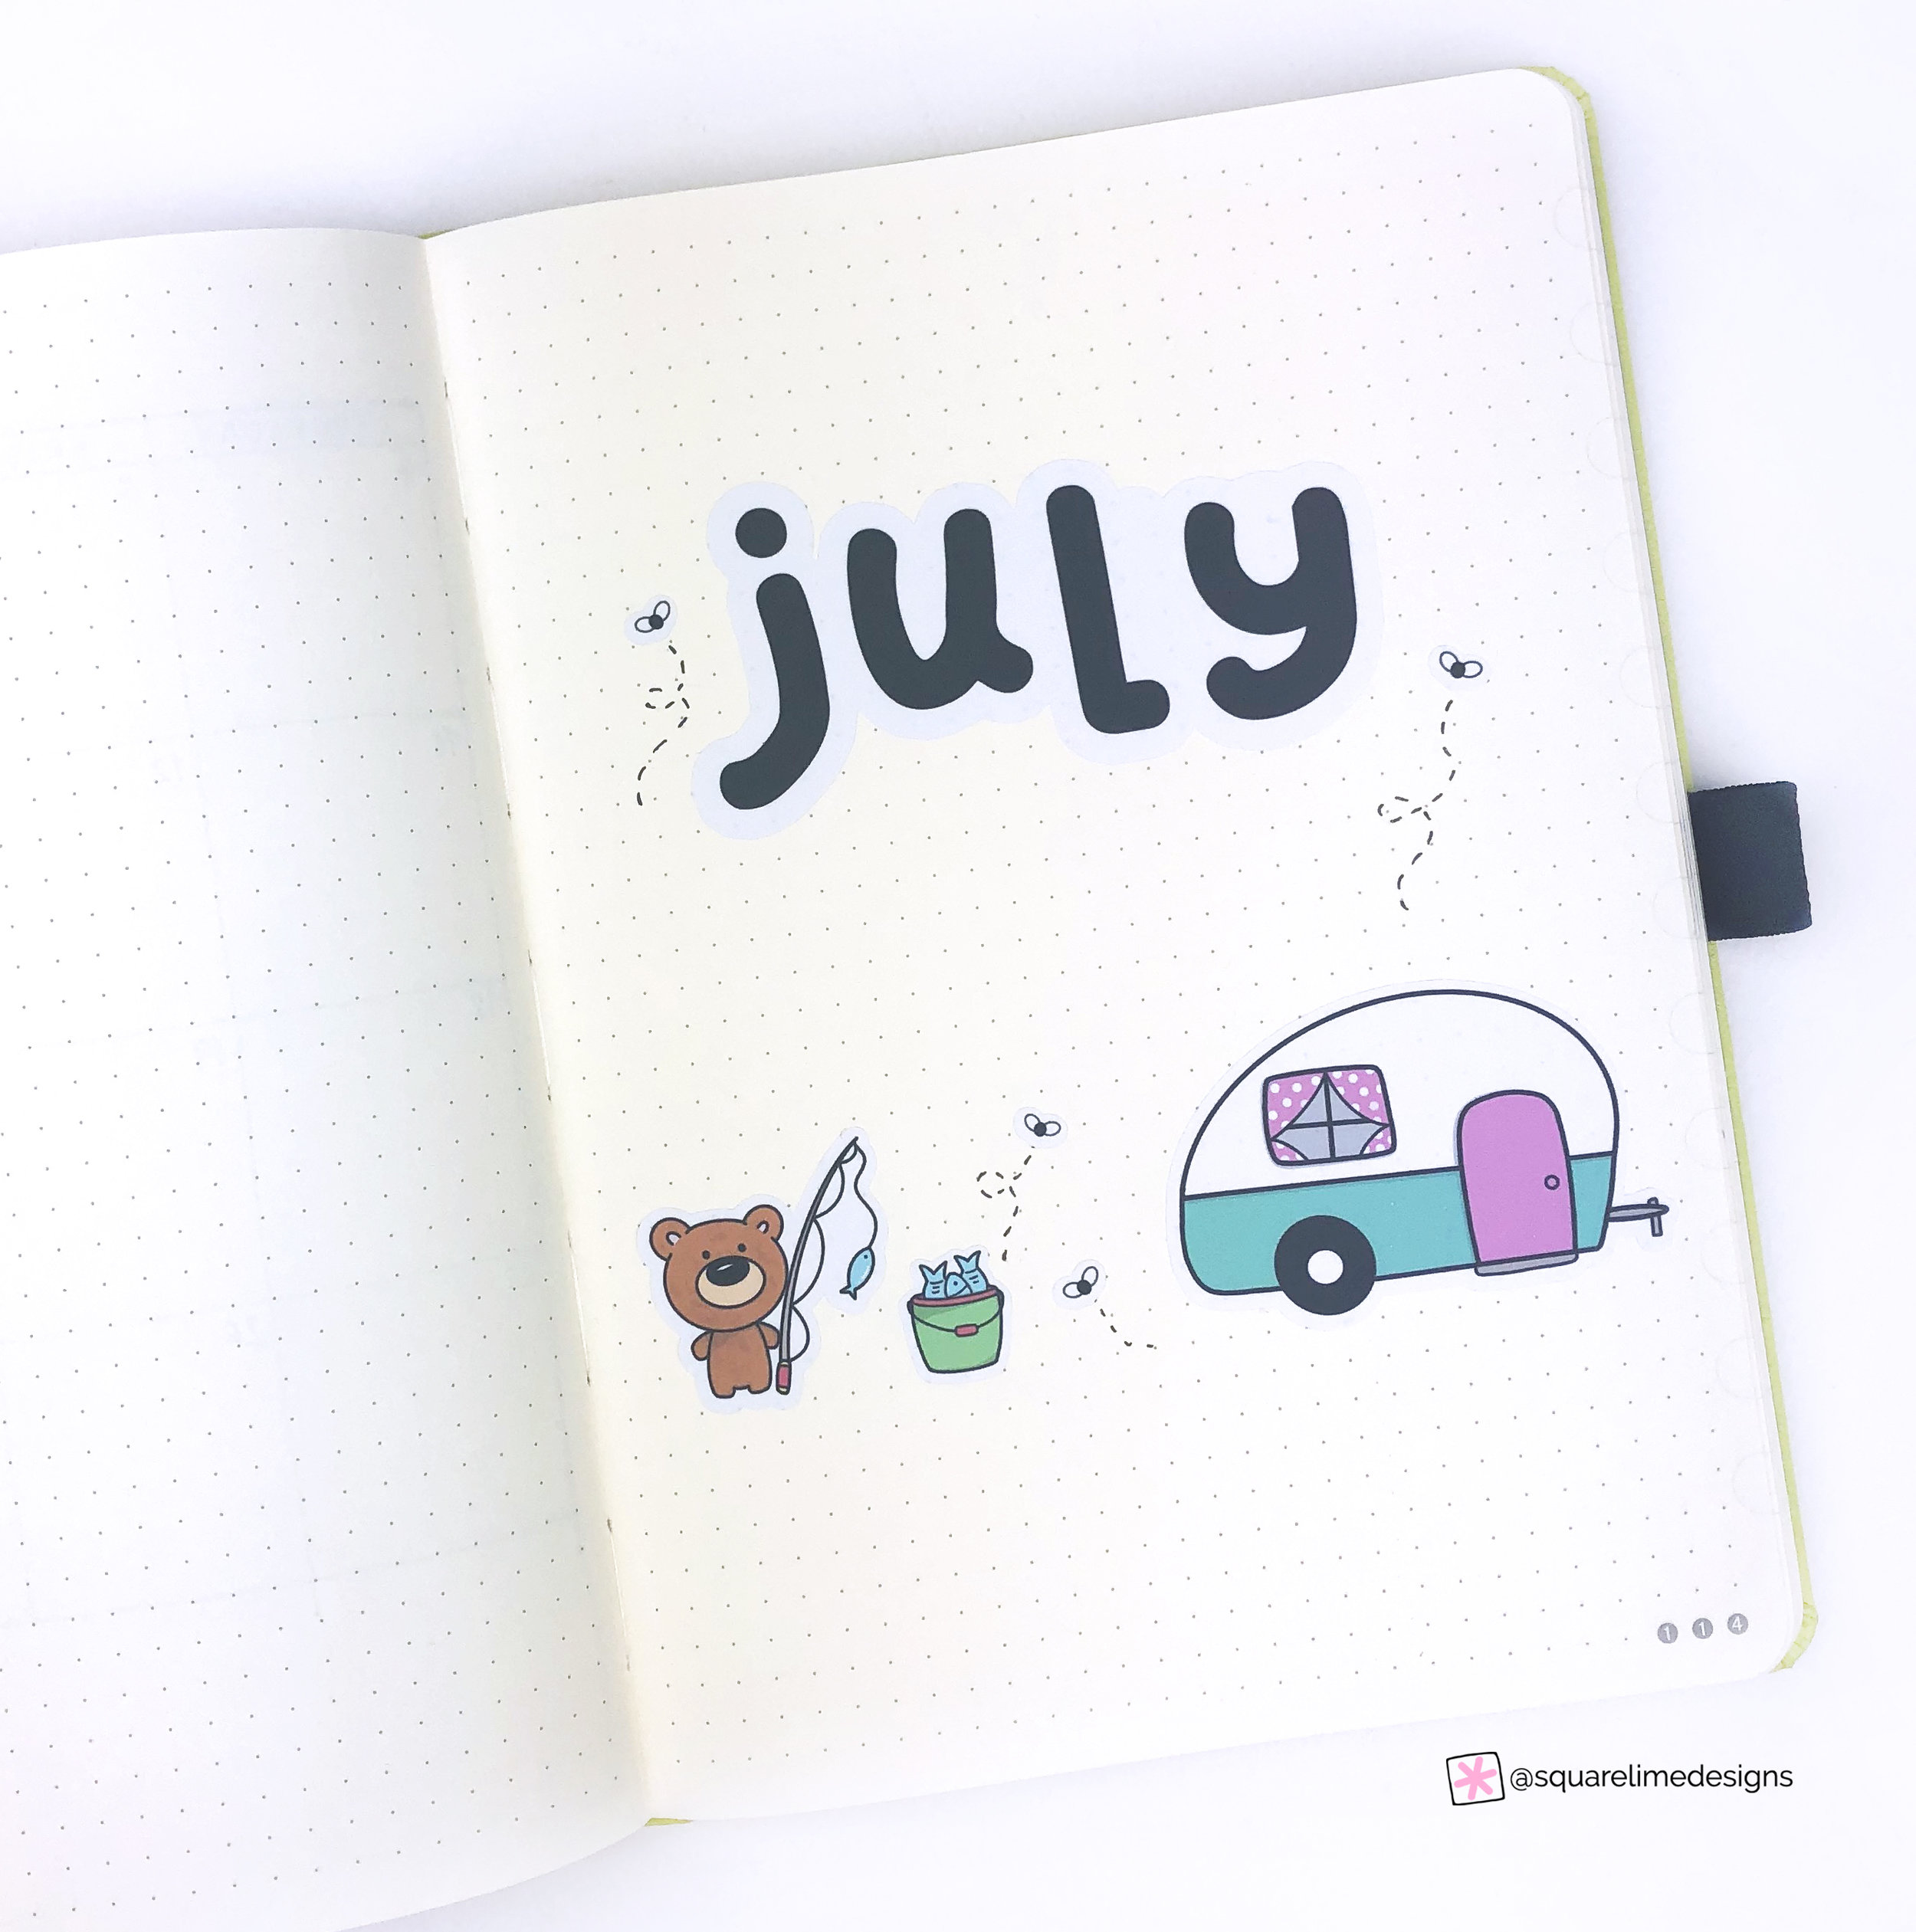 Bullet Journal Monthly Layout for July 2019 - Cover Page